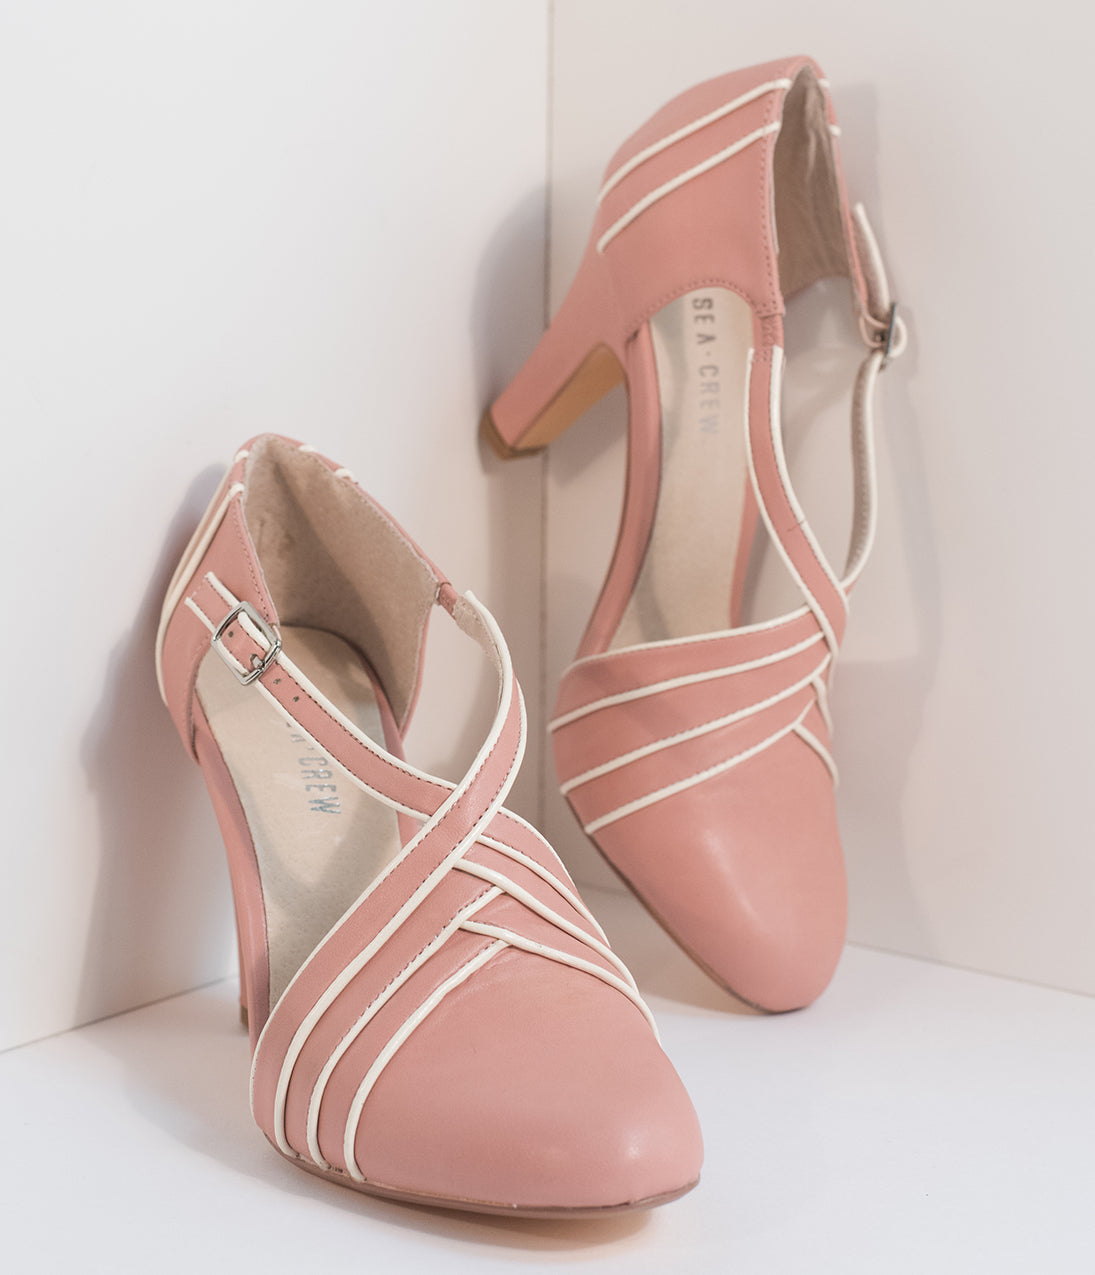 1950s Style Shoes Vintage Style Dusty Pink  Ivory Leatherette DOrsay Heels $64.00 AT vintagedancer.com